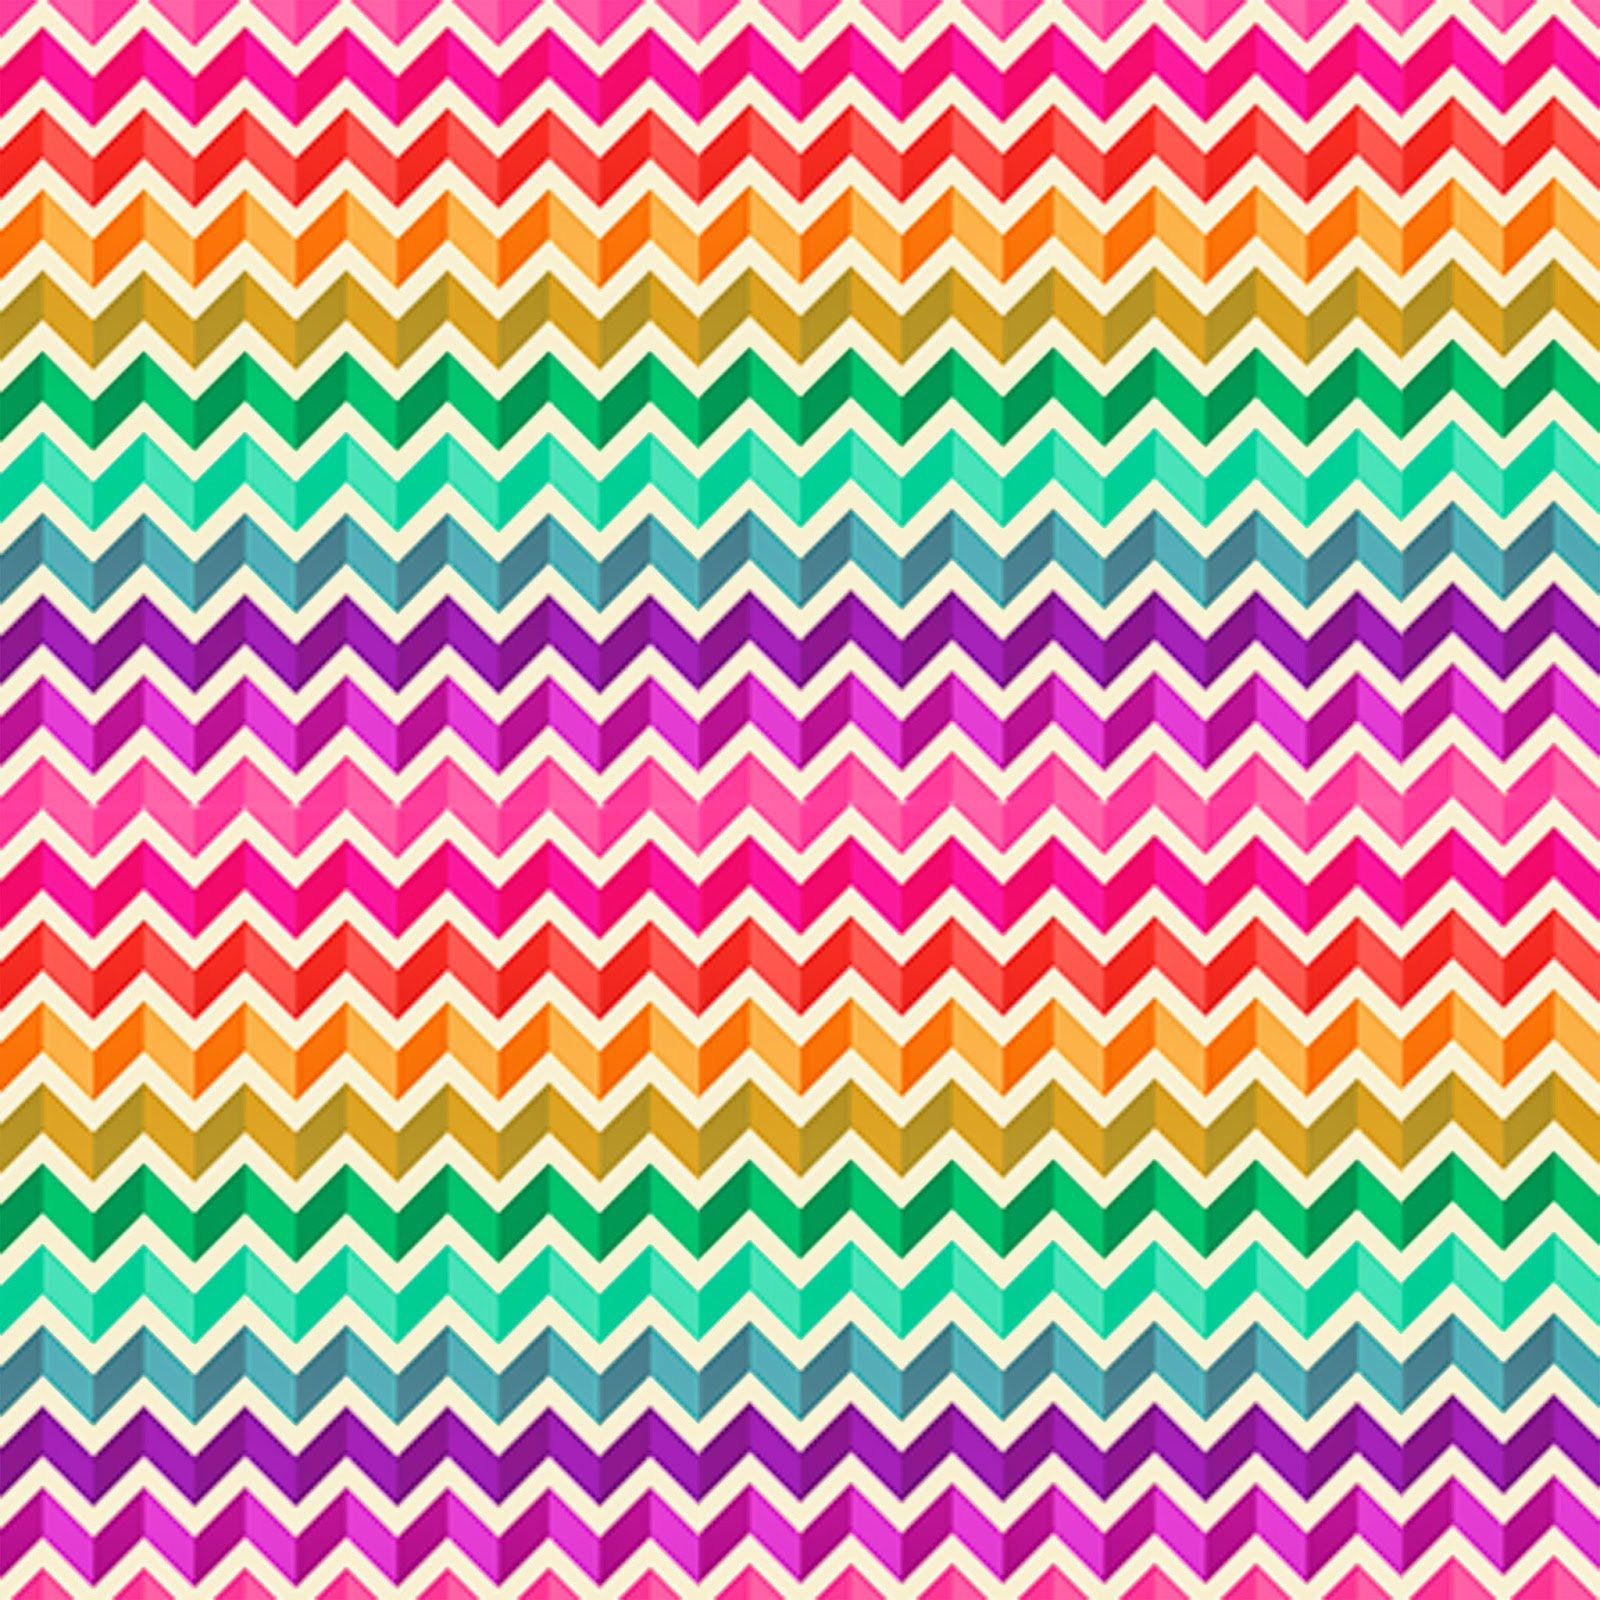 Cute Locker Wallpaper Doodlecraft 8 Colorful Block Chevron Freebie Printable